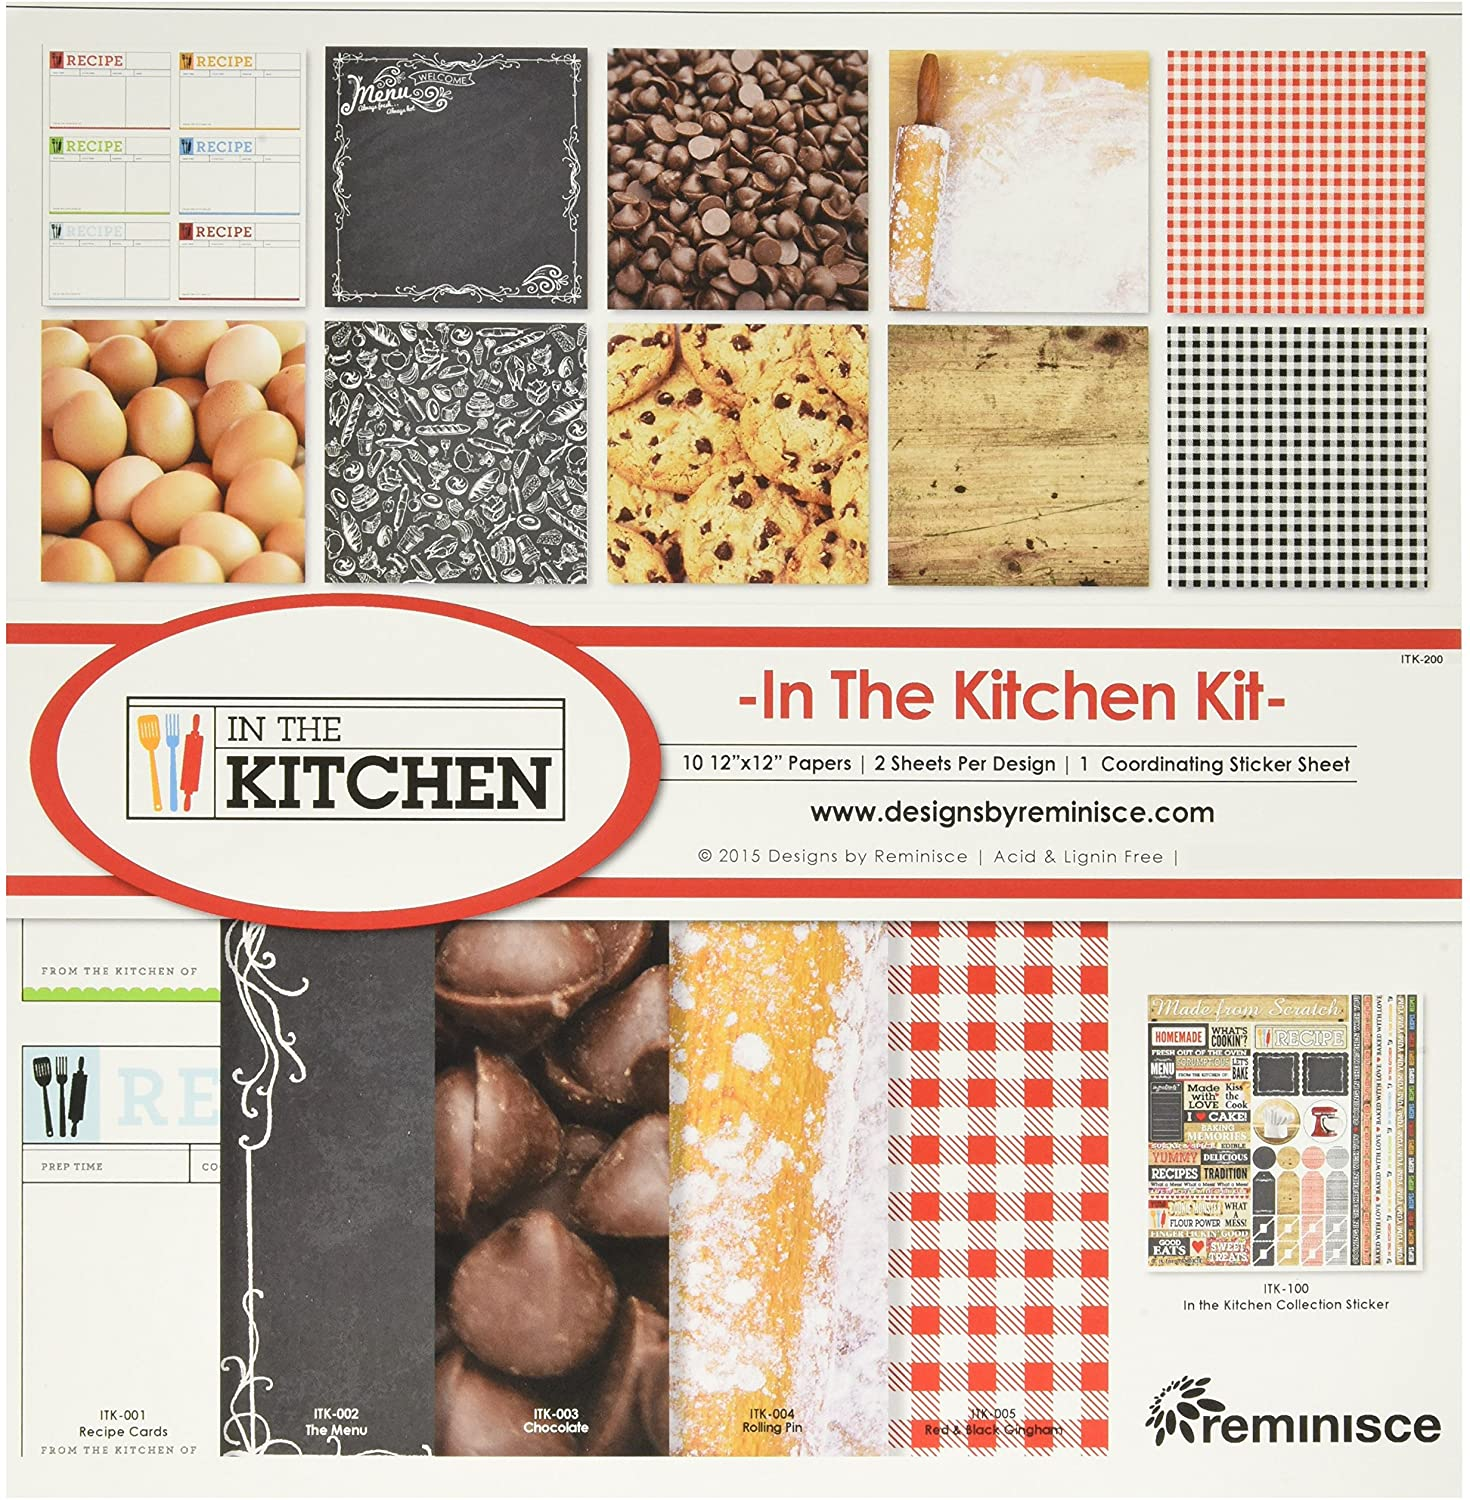 10 1 12x12 Papers 12x12 Sticker Sheet Reminisce IN THE KITCHEN Scrapbook Kit